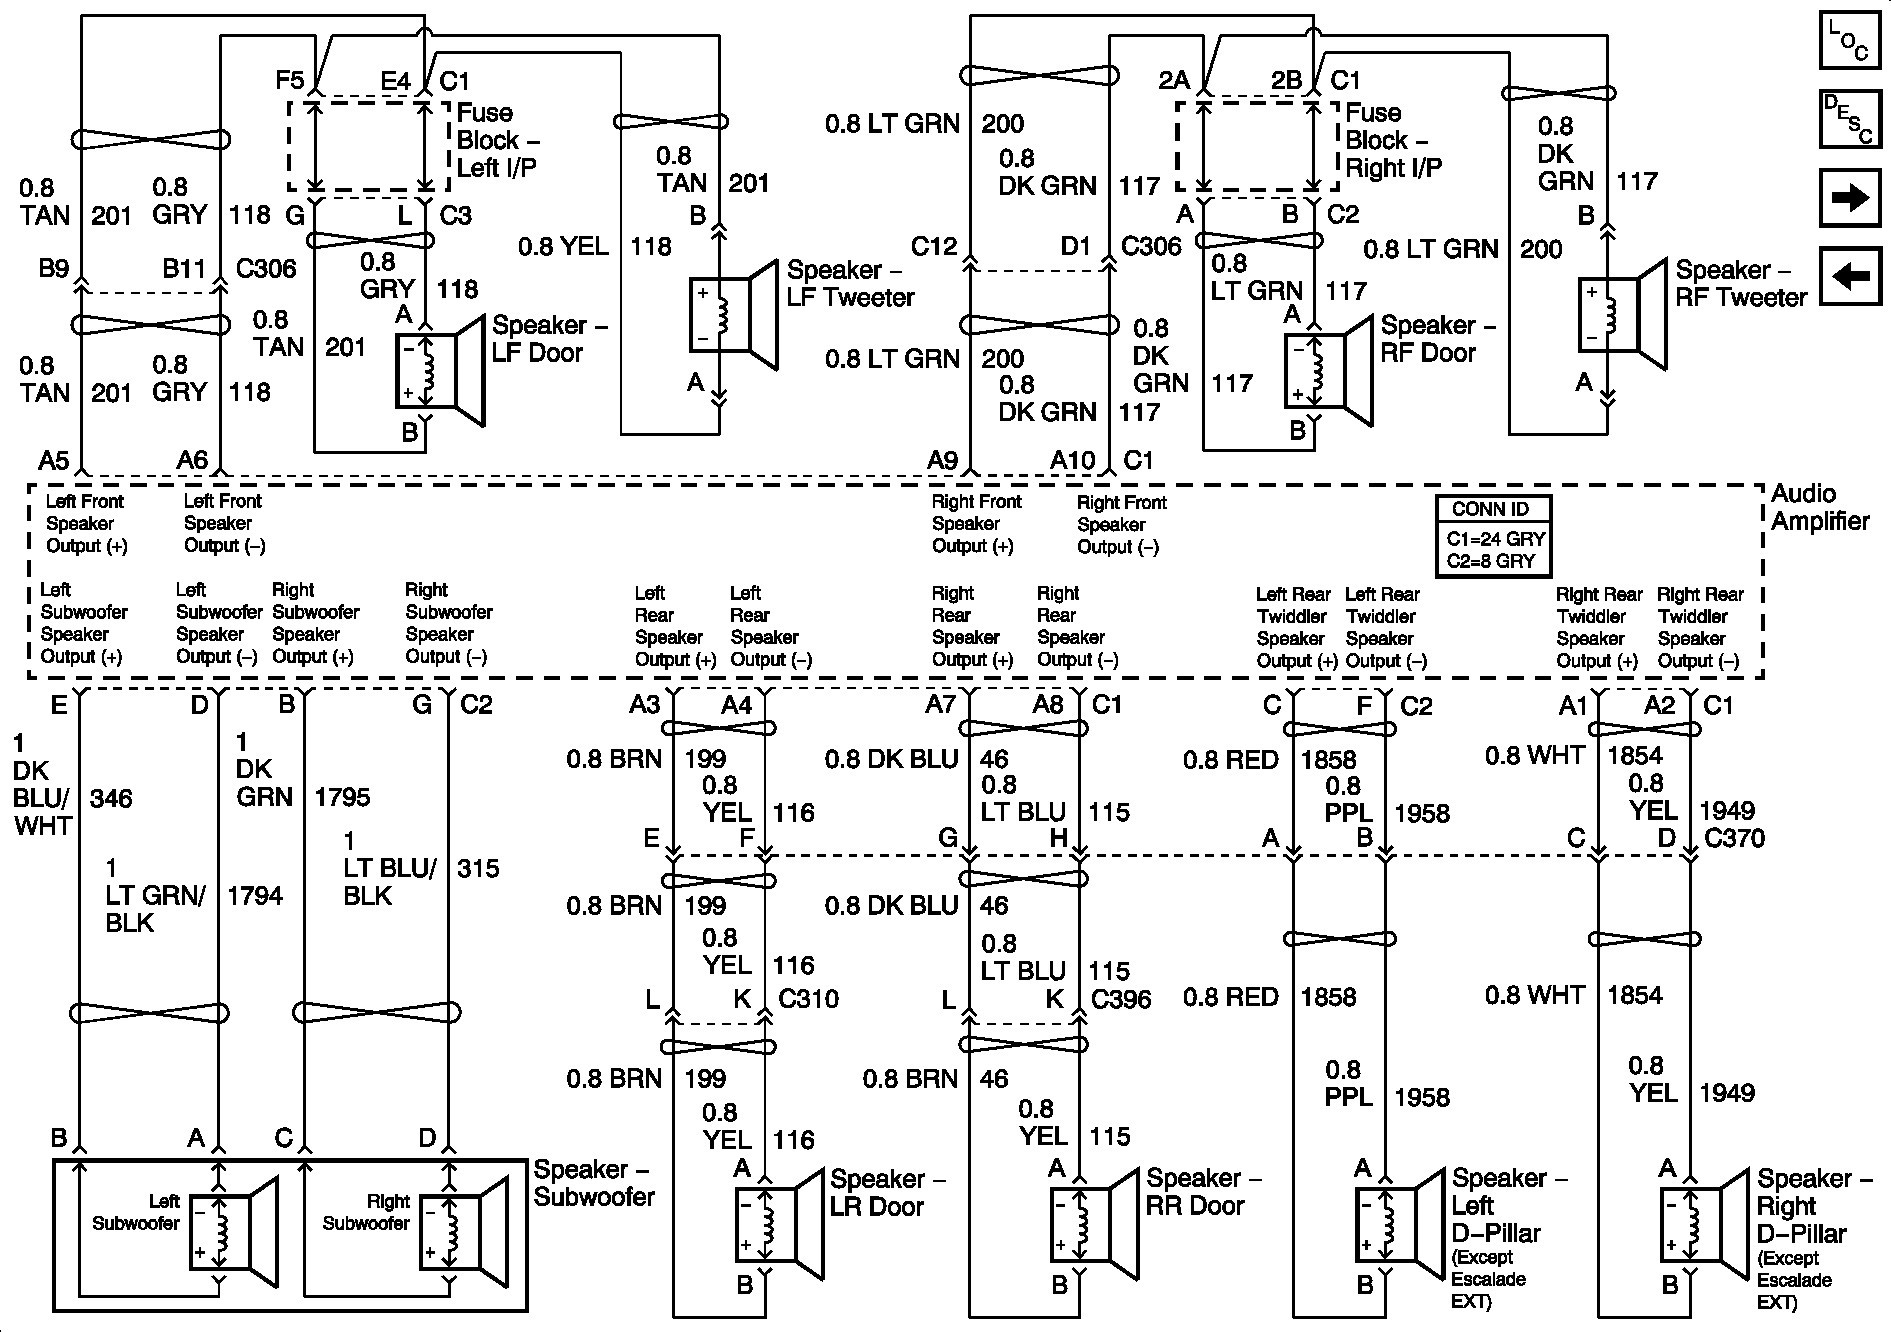 [SCHEMATICS_4JK]  2004 Chevrolet Tahoe Wiring Diagram -1 Wire Alternator Wiring Diagram Chevy  | Begeboy Wiring Diagram Source | 2004 Ssr Wiring Diagram |  | Begeboy Wiring Diagram Source